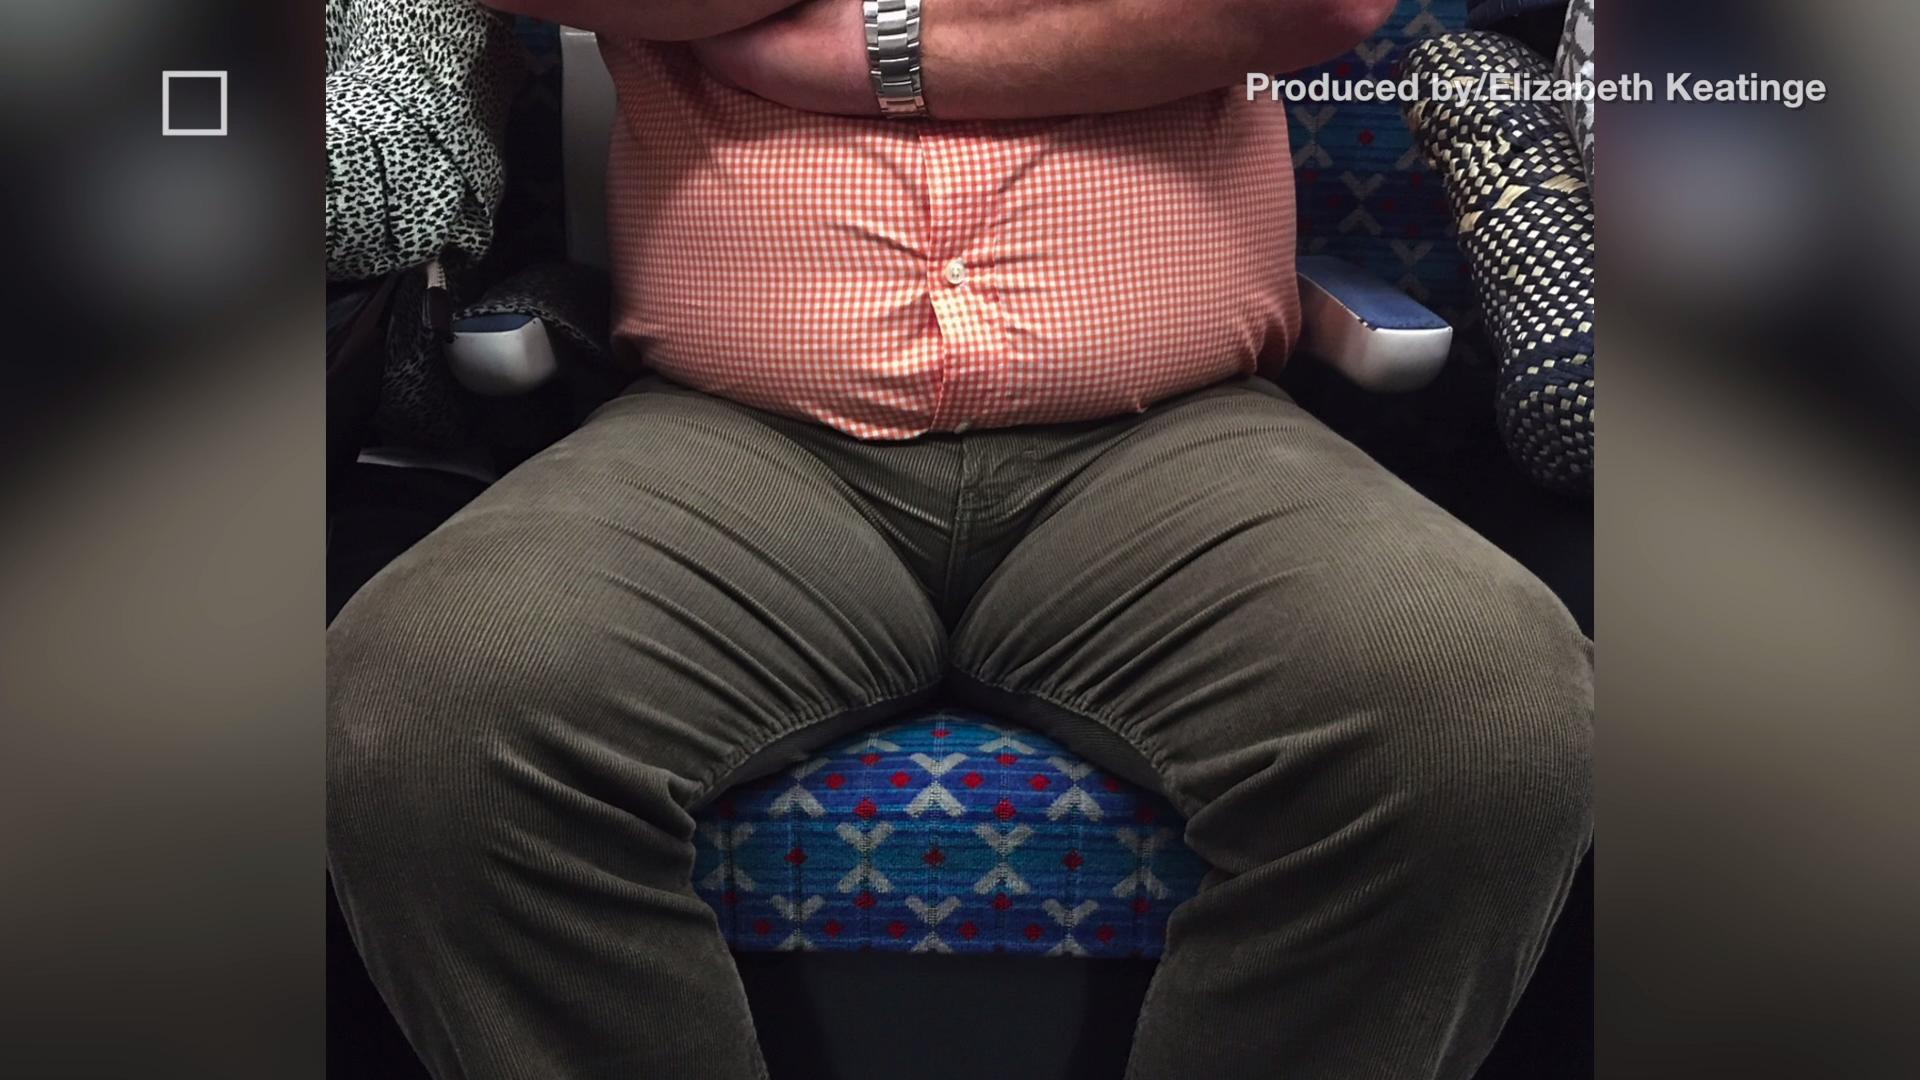 Los Angeles Metro Riders Face $75 'Manspreading' Fine